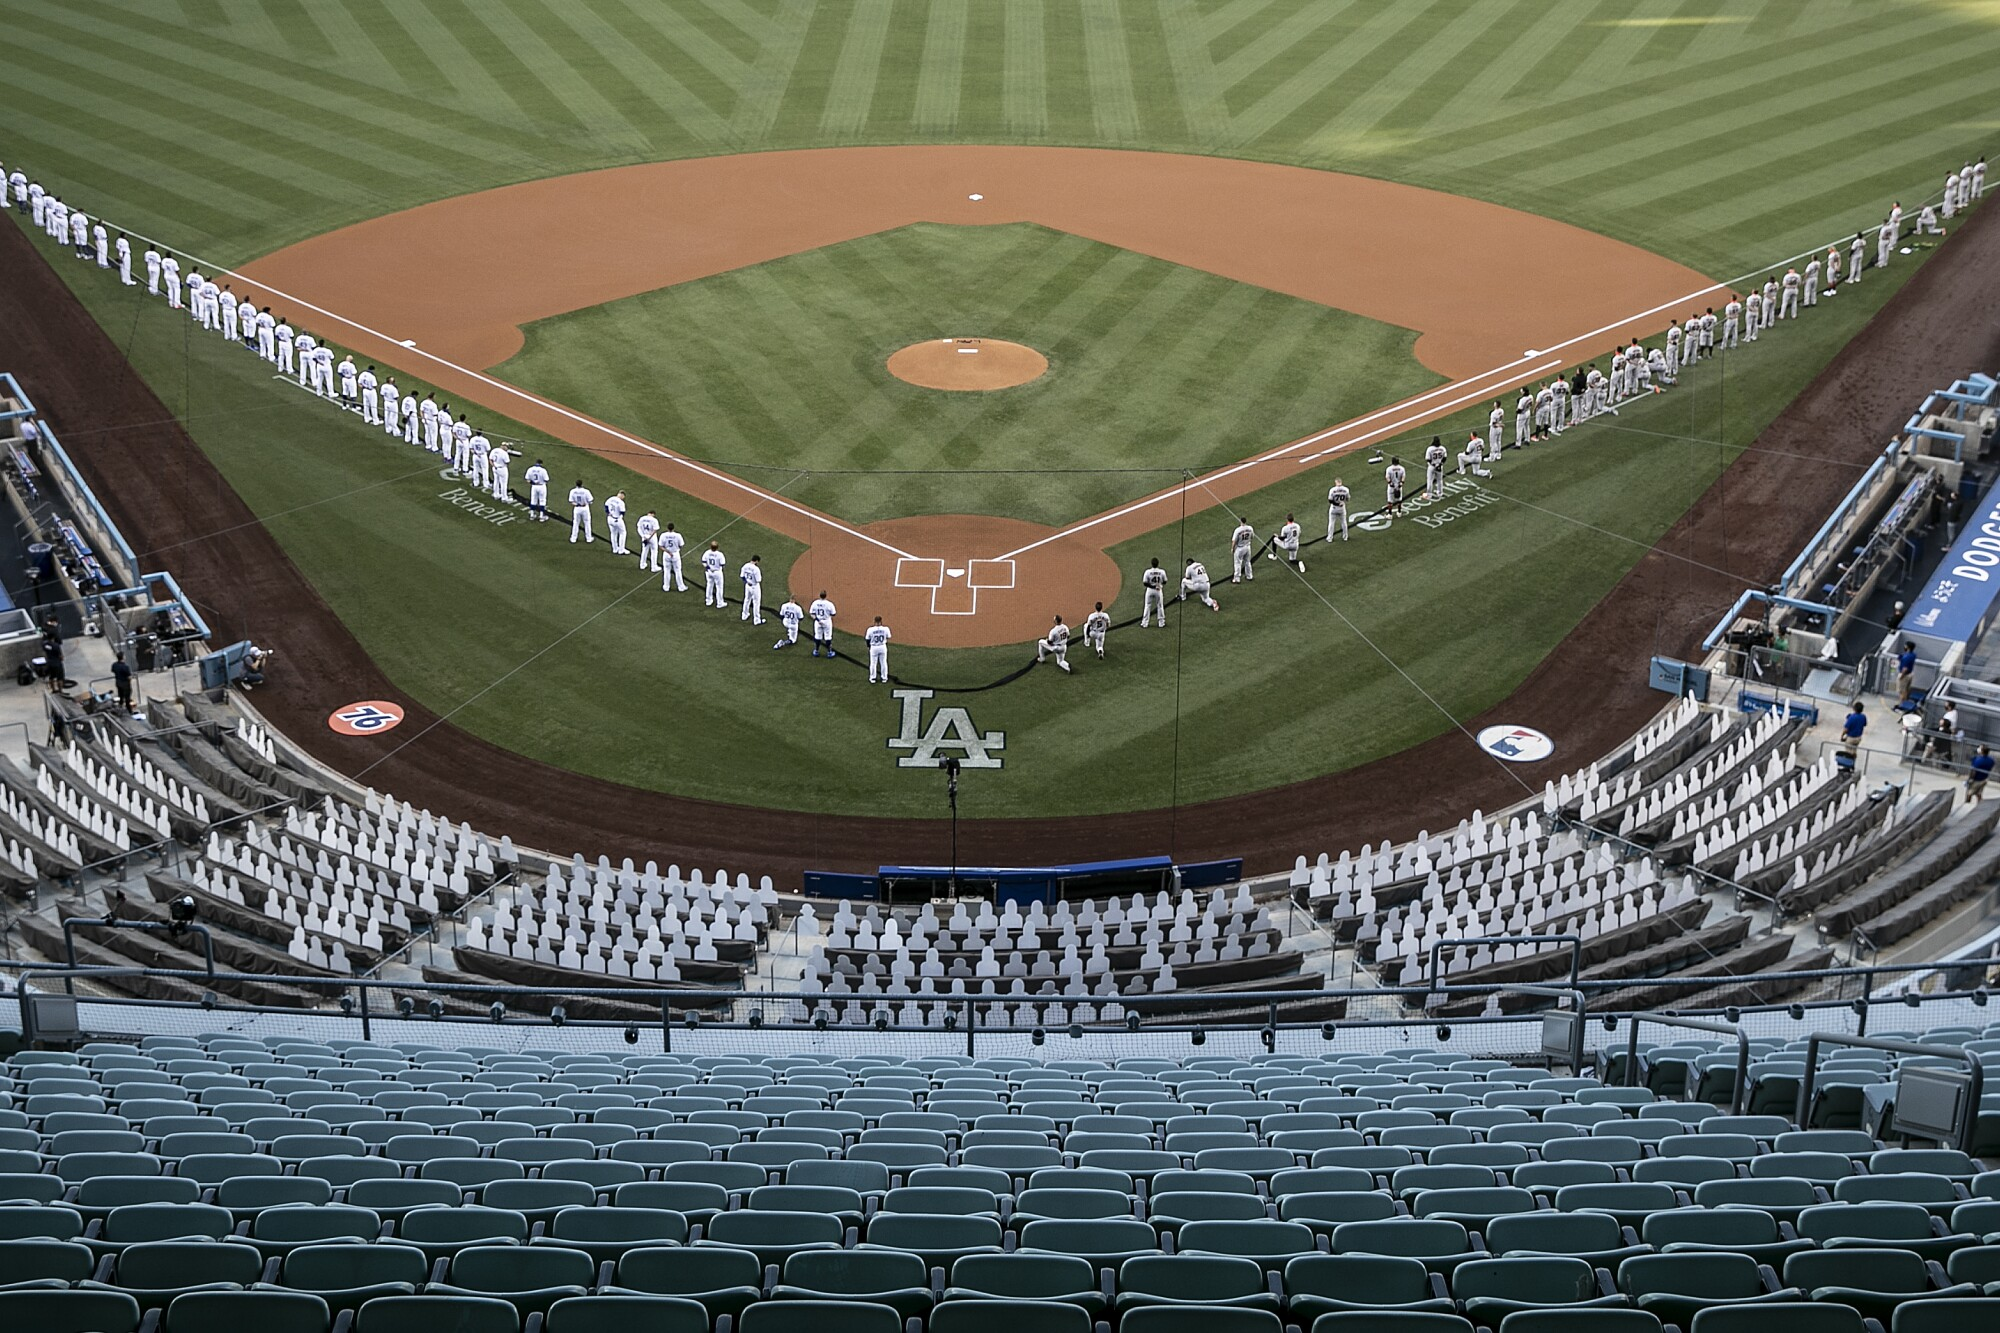 dodger game yesterday recap MLB Opening Day 2: Dodgers defeat Giants 2-2 in opener - Los